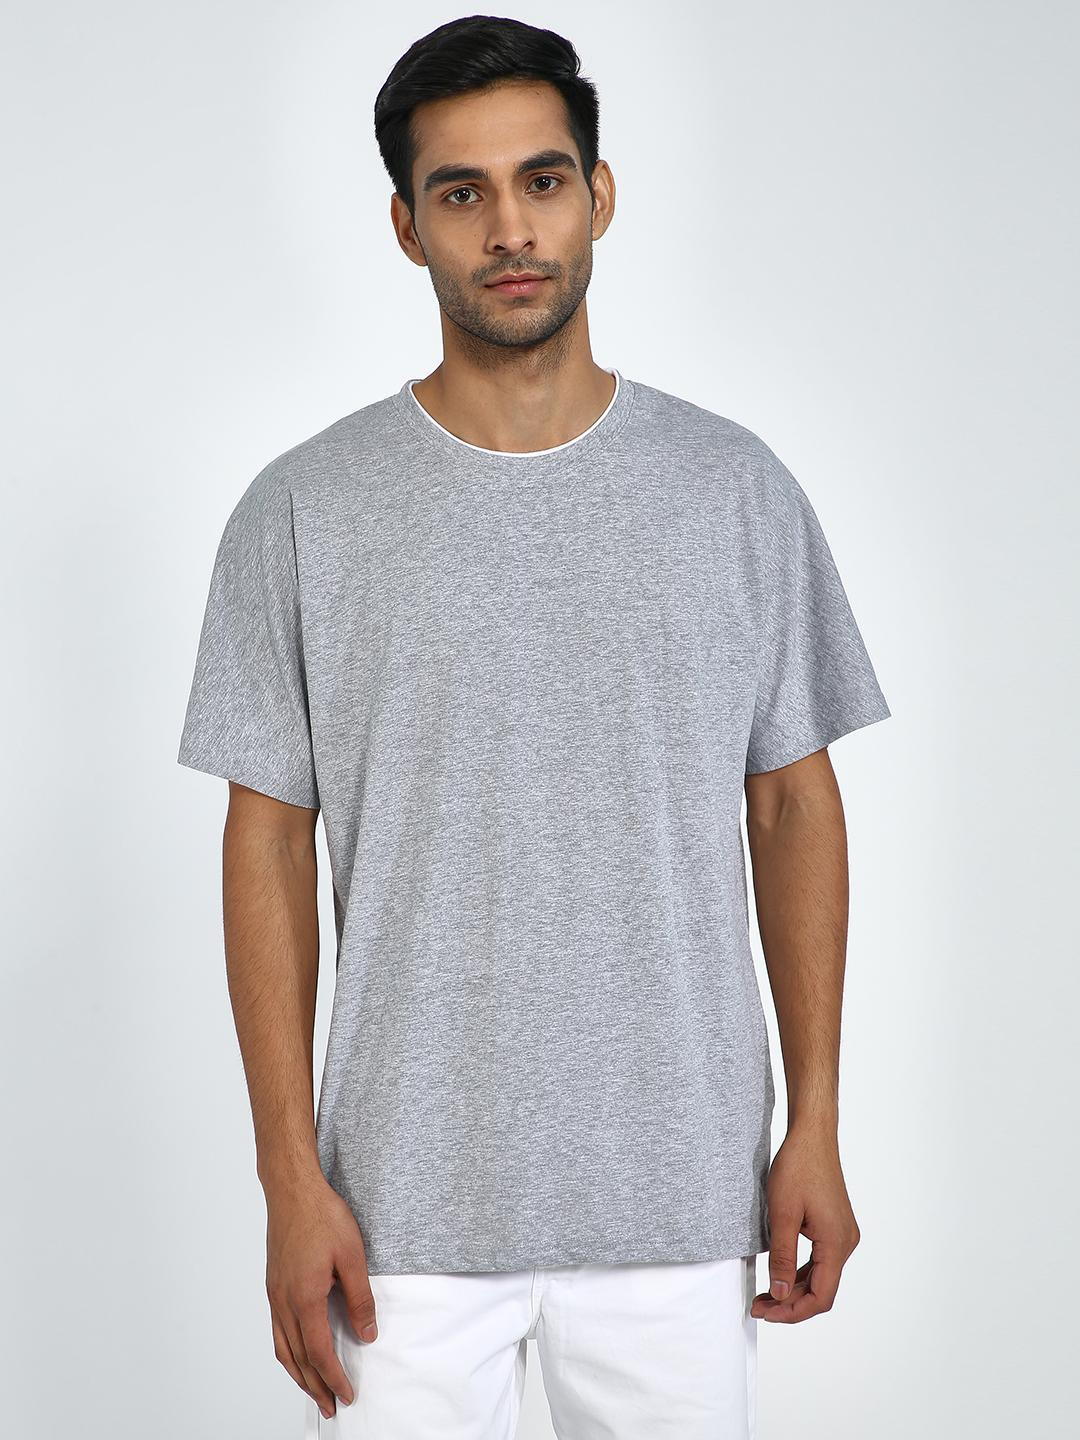 Blue Saint Grey Textured Crew Neck T-Shirt 1